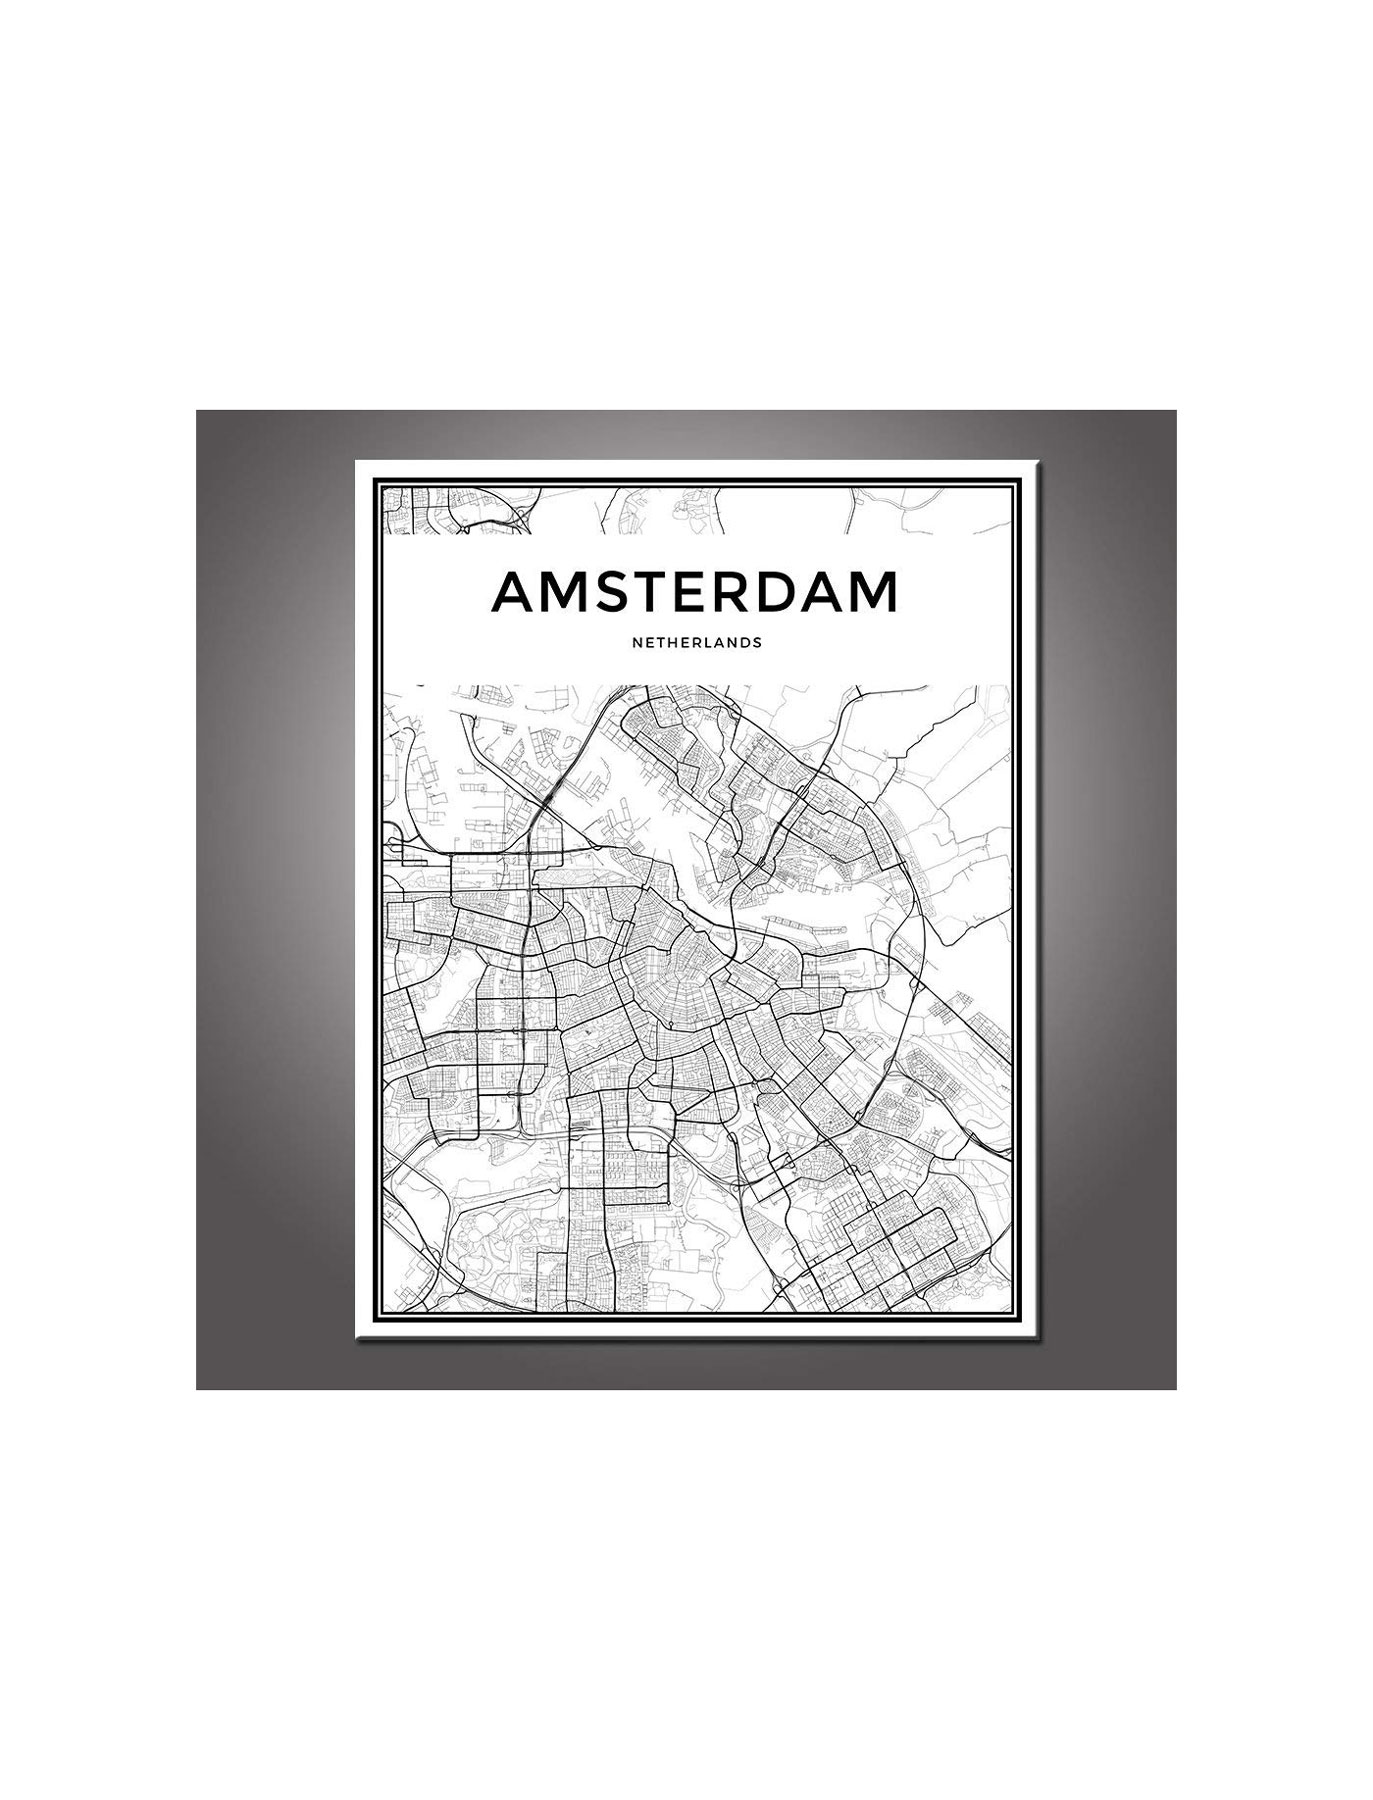 DingDongArt Framed Canvas Wall Art – Amsterdam Linear City Map